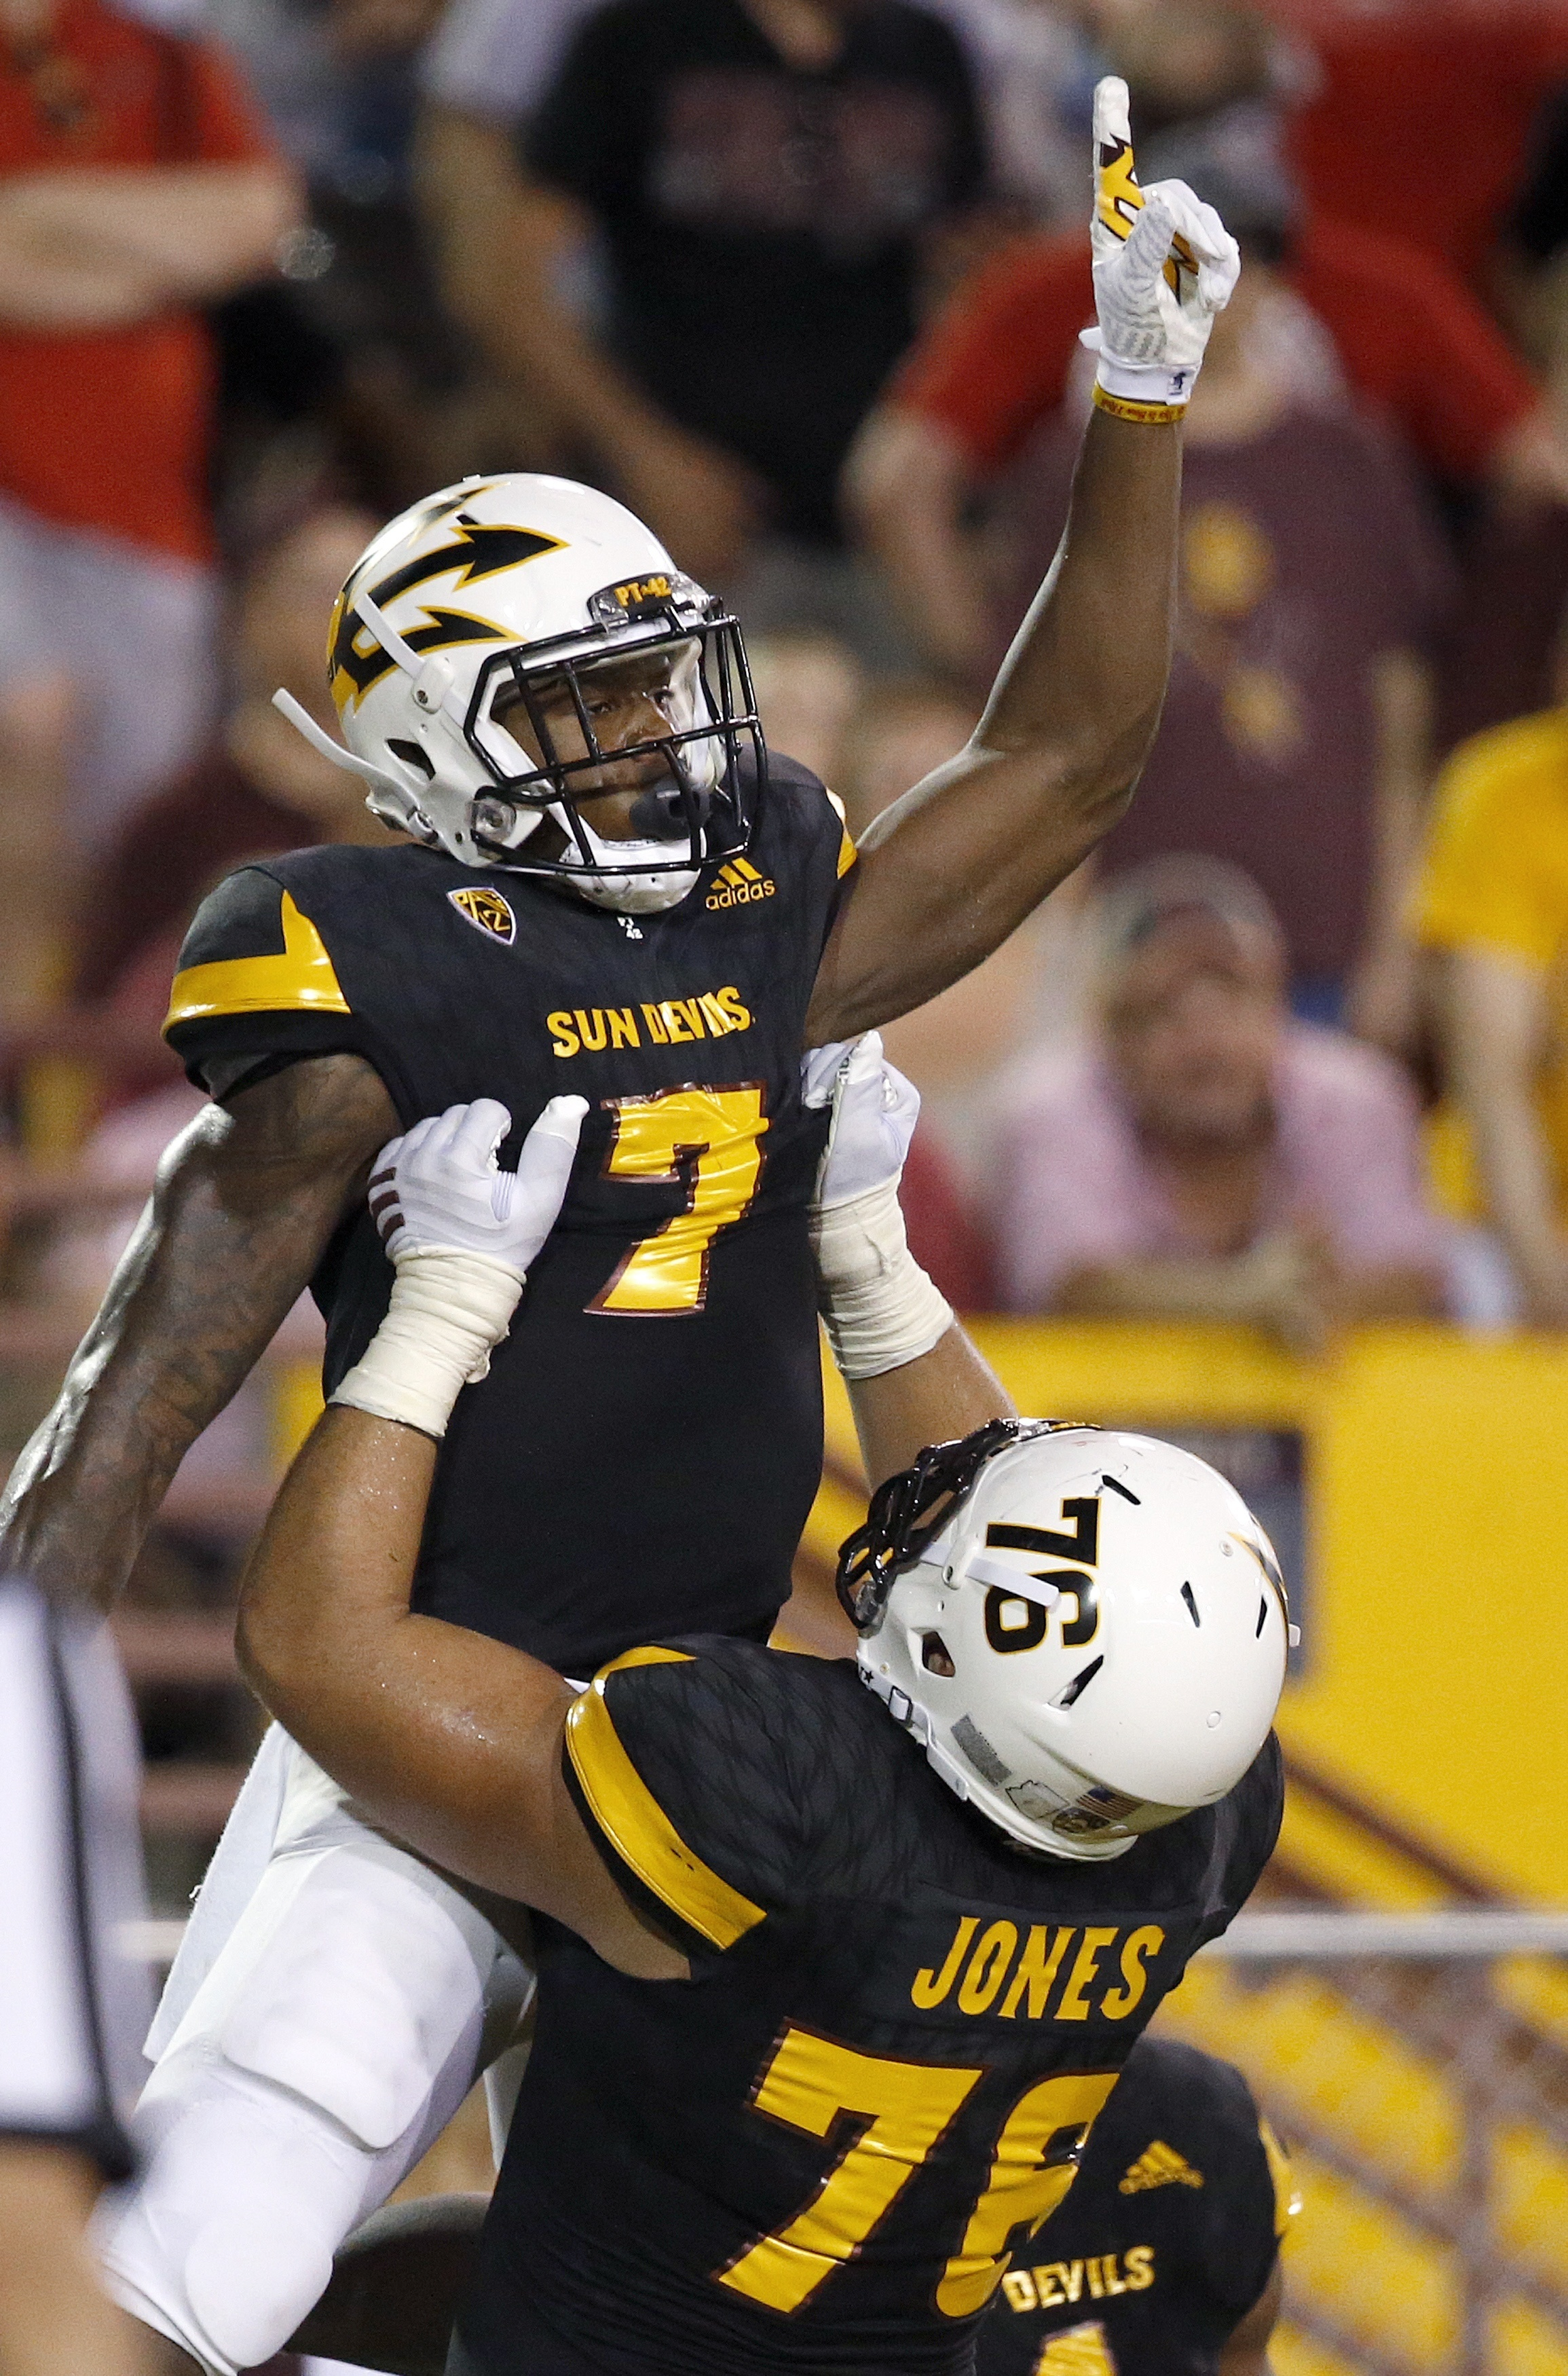 Arizona State's Kalen Ballage (7) celebrates a touchdown against Texas Tech with Sam Jones, right, during the first half of an NCAA college football game Saturday, Sept. 10, 2016, in Tempe, Ariz. (AP Photo/Ross D. Franklin)